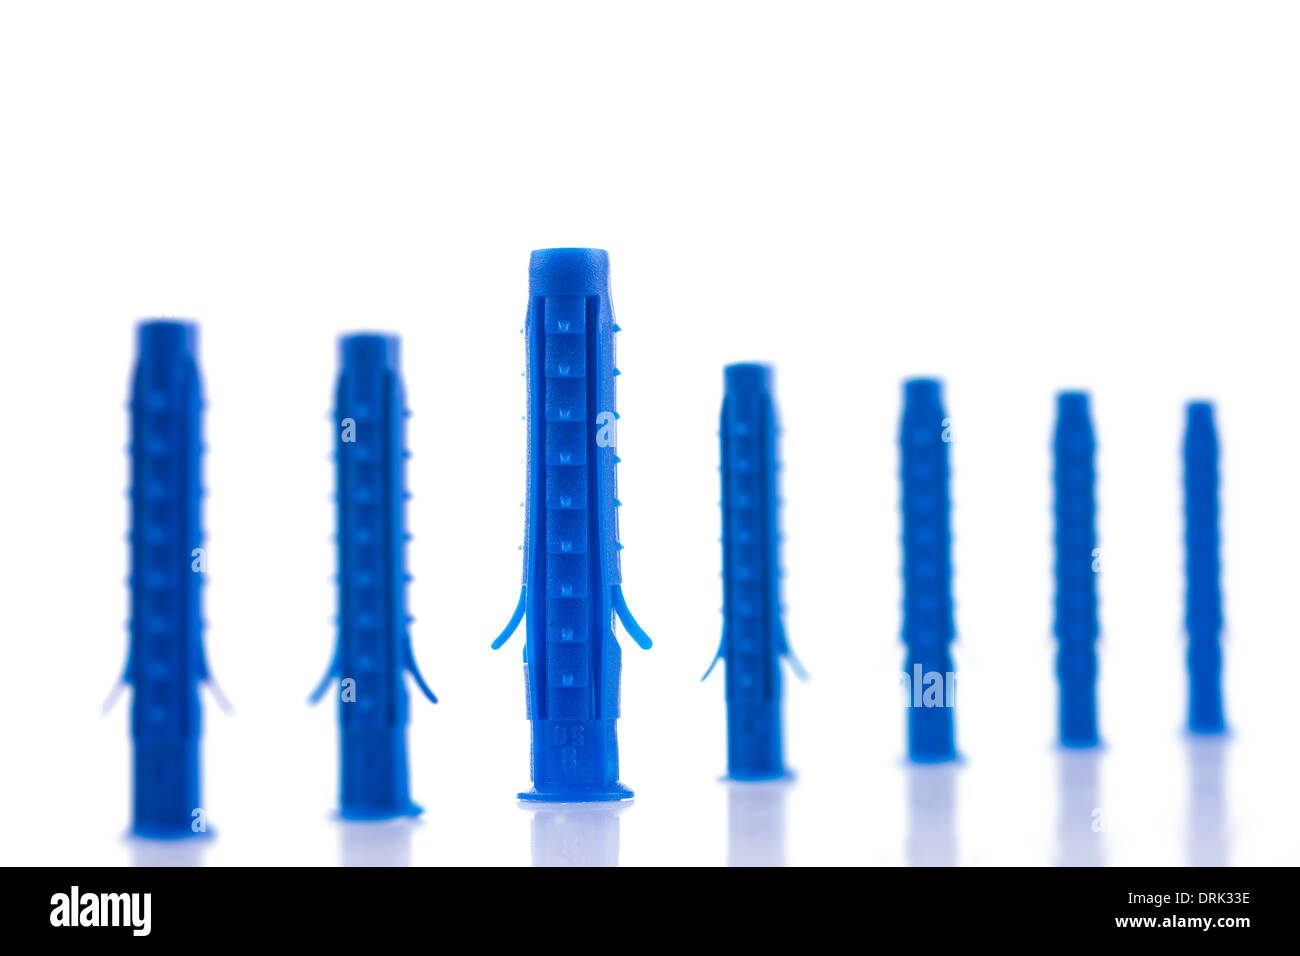 Group of plastic dowels on white background - Stock Image